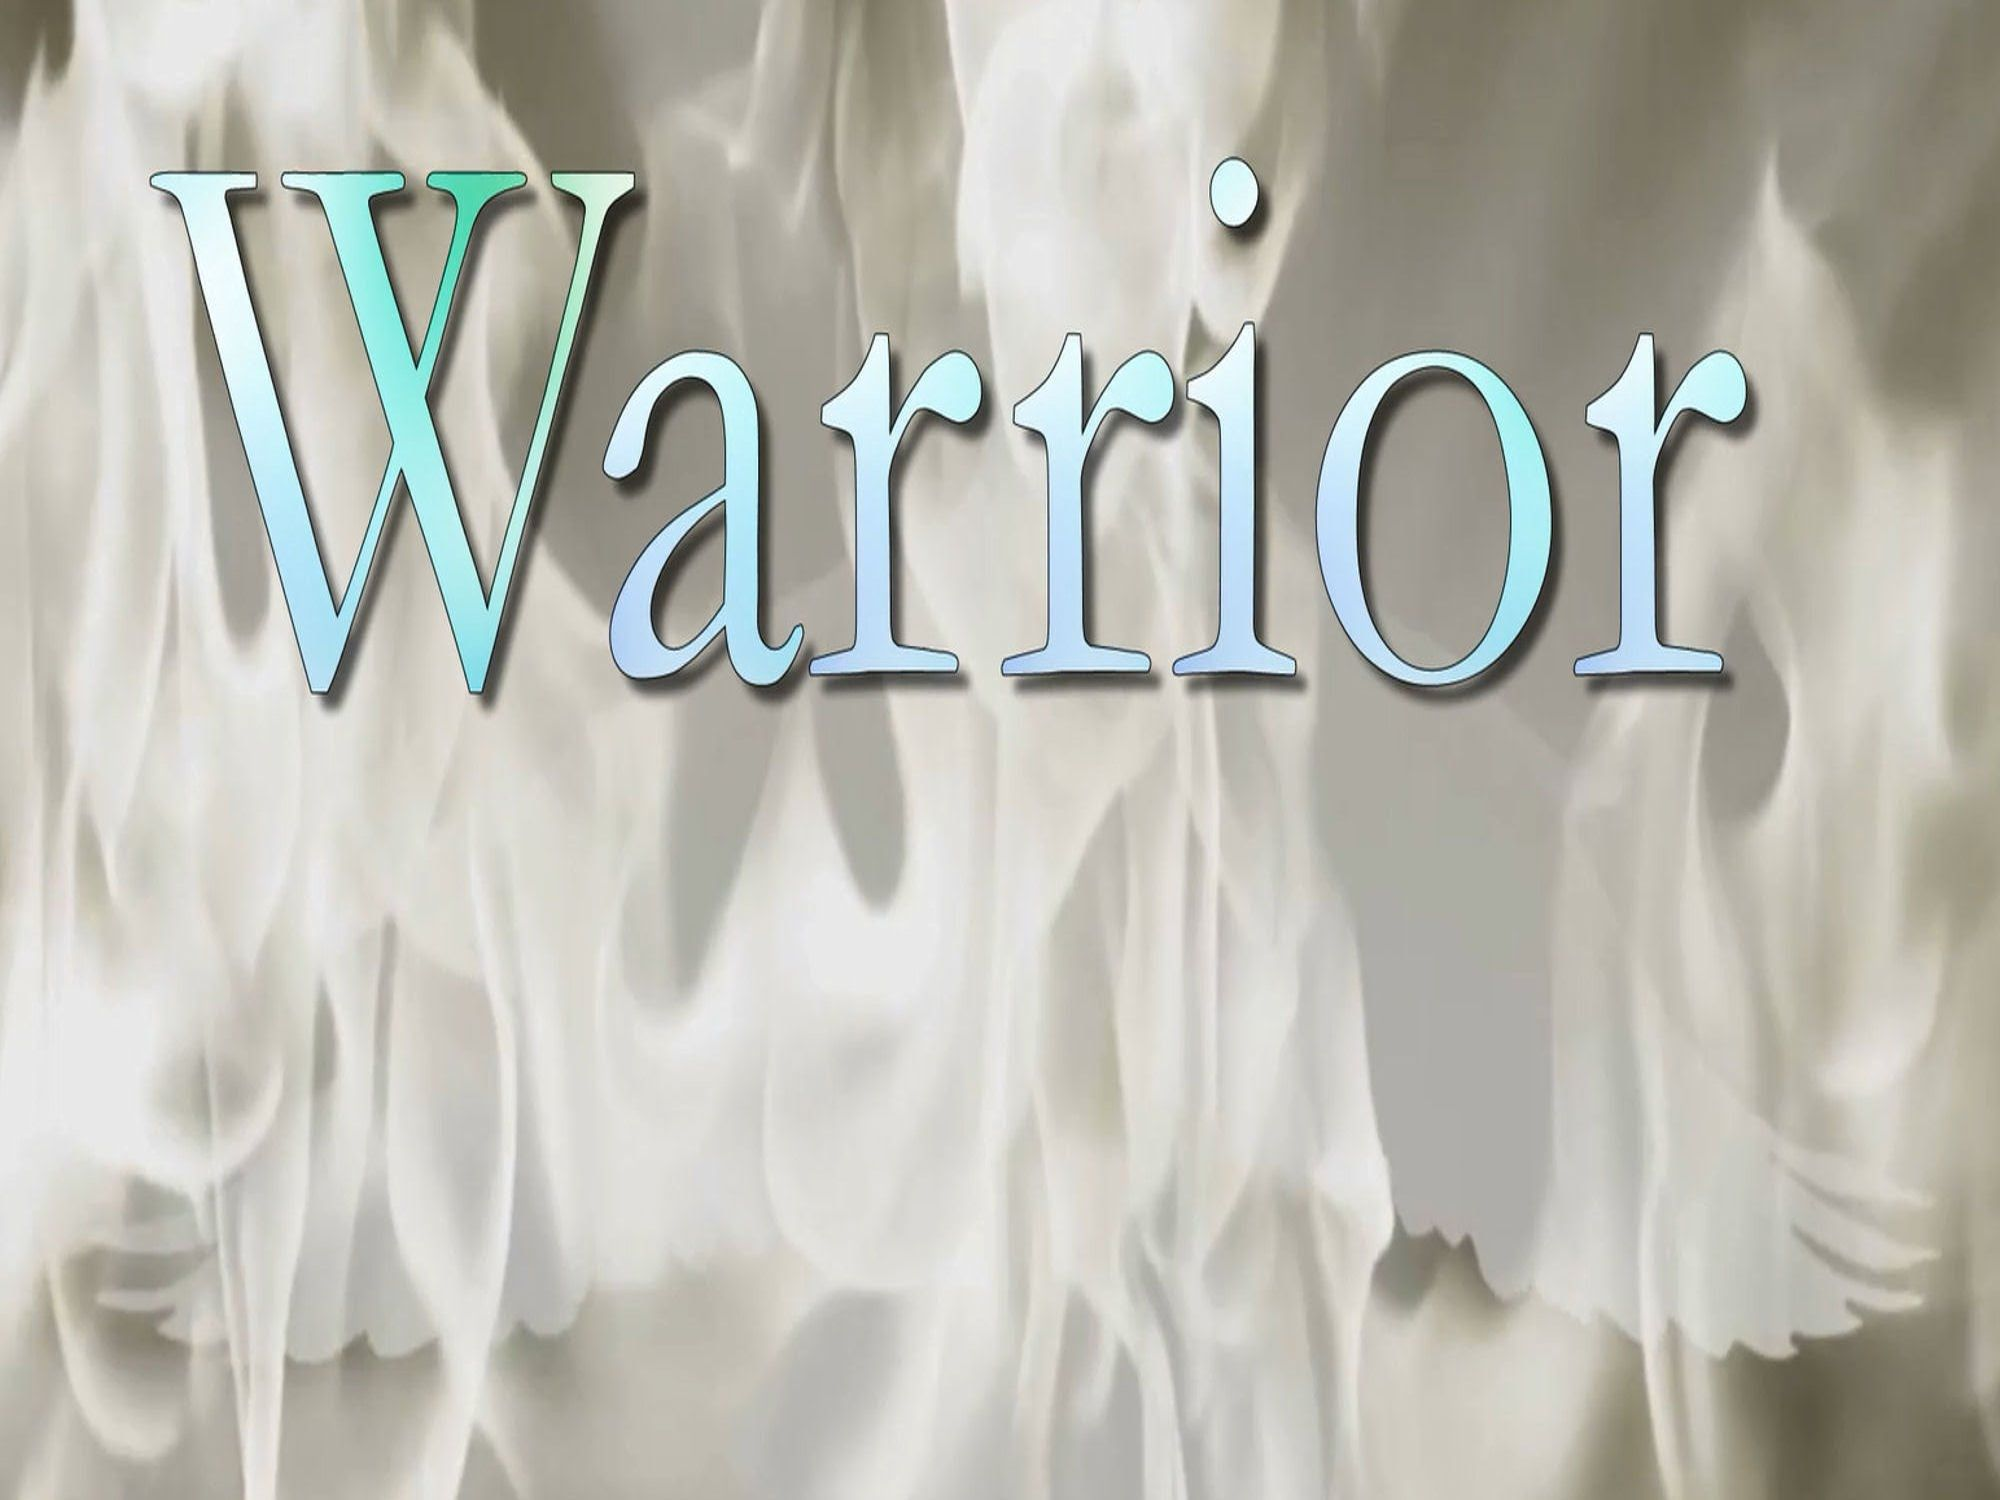 Lyrics Warrior Steven Curtis Chapman War Room sound track